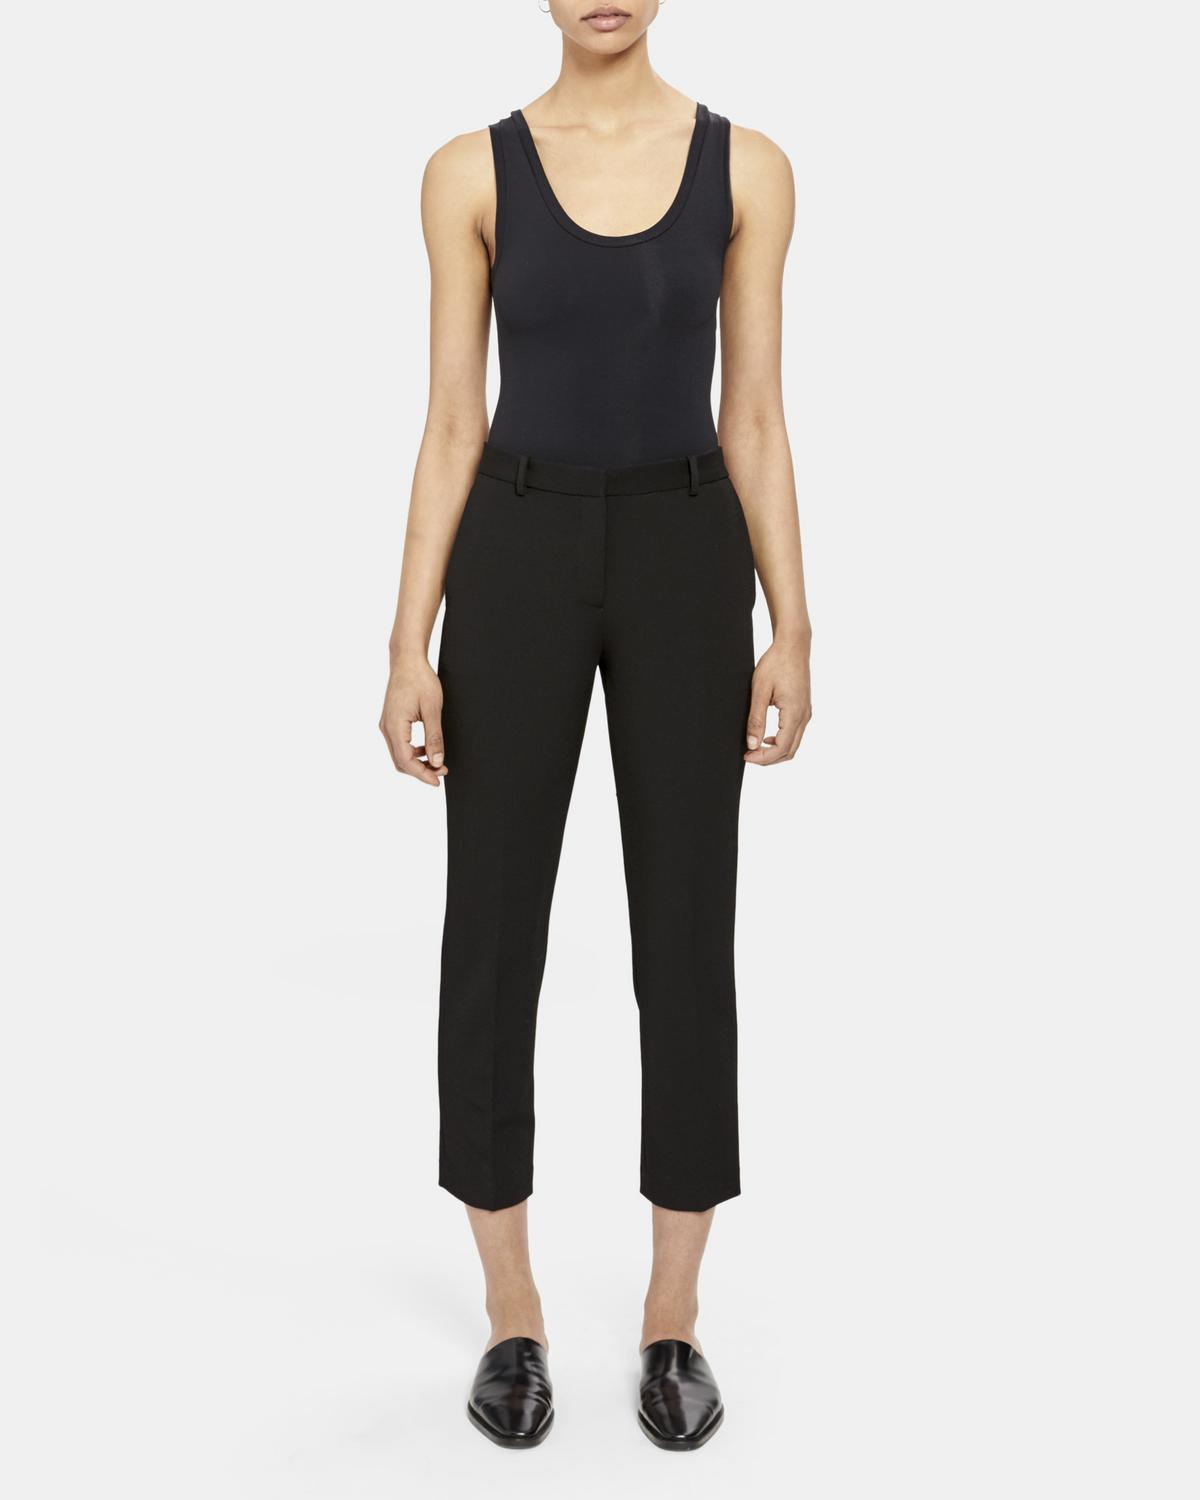 Treeca Pant in Stretch Knit